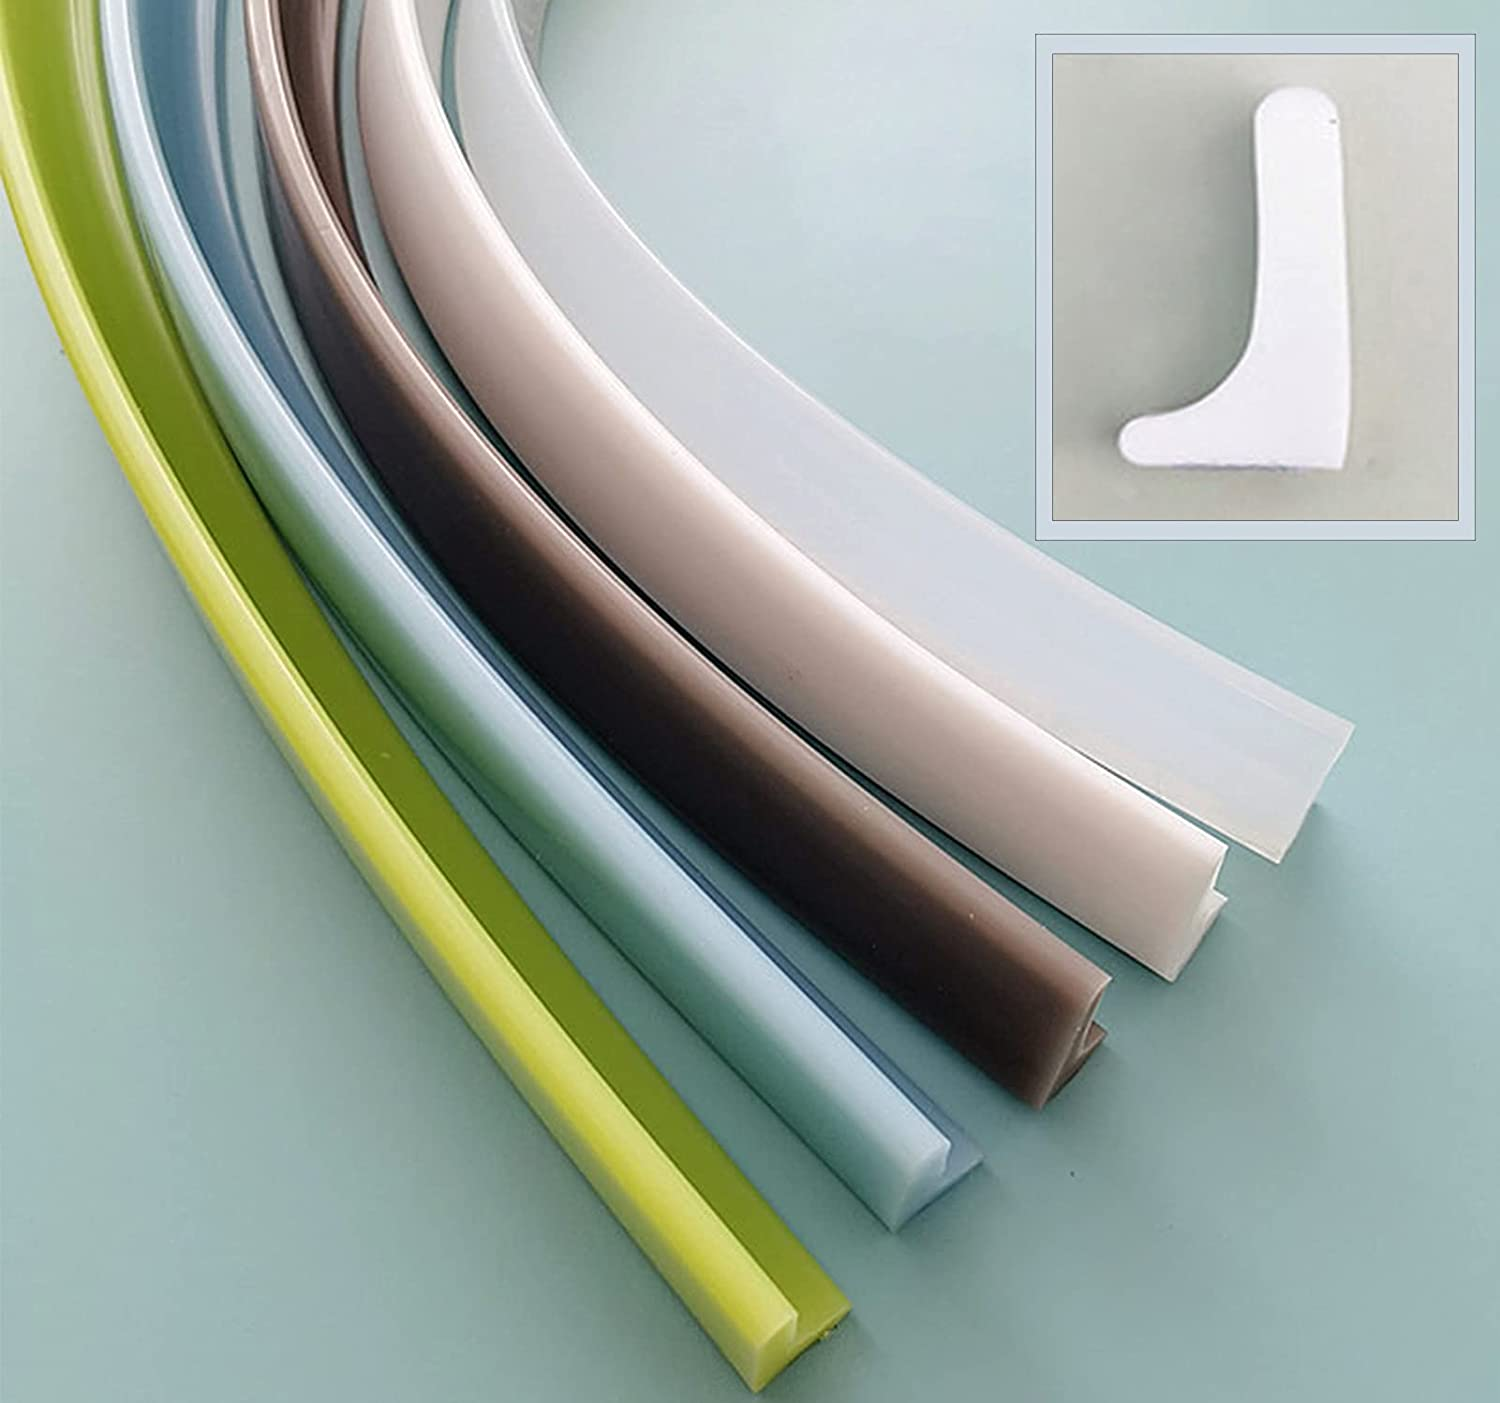 Xanperex Self-Adhesive Max 55% NEW before selling ☆ OFF Silicon Collapsible Blocking Water Strip